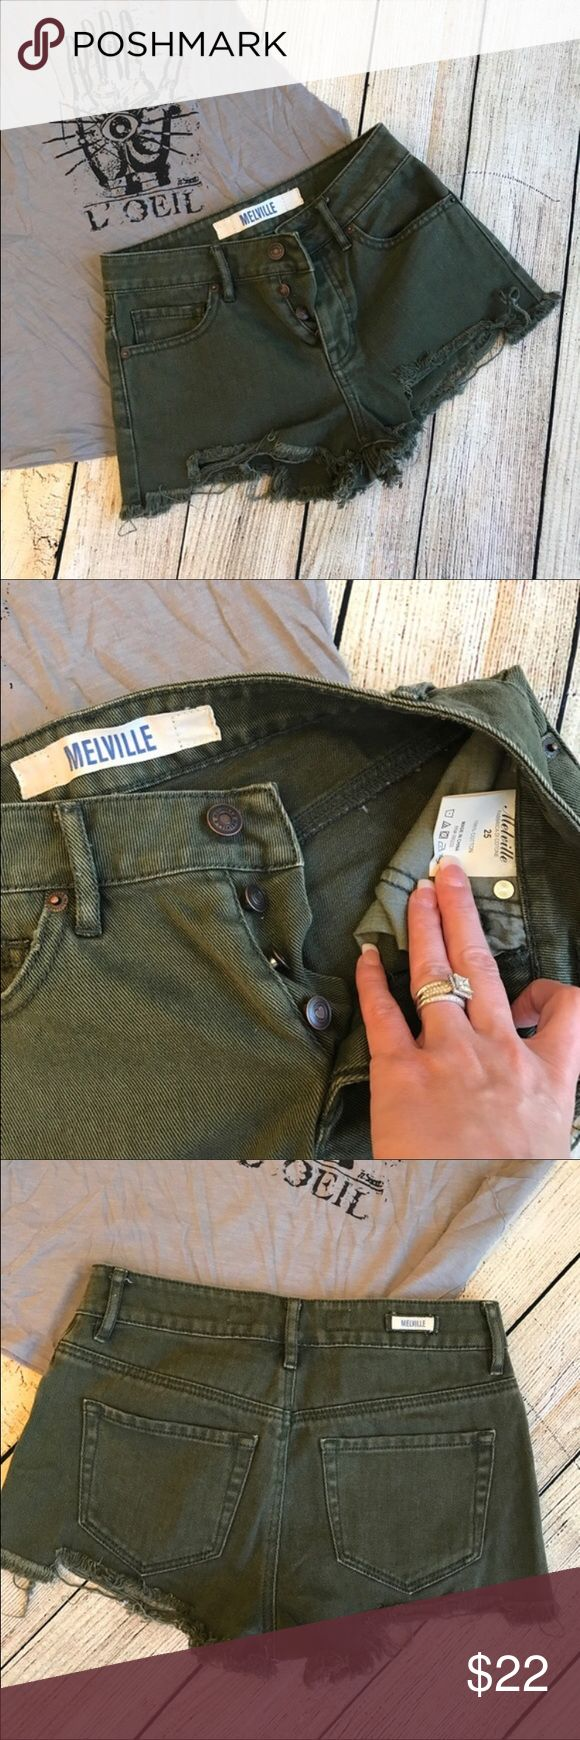 Brandy Melville Olive Green Shorts! Shorts are basically brand new, no flaws and are extremely cute. Comes with Brandy Melville stickers! Brandy Melville Shorts